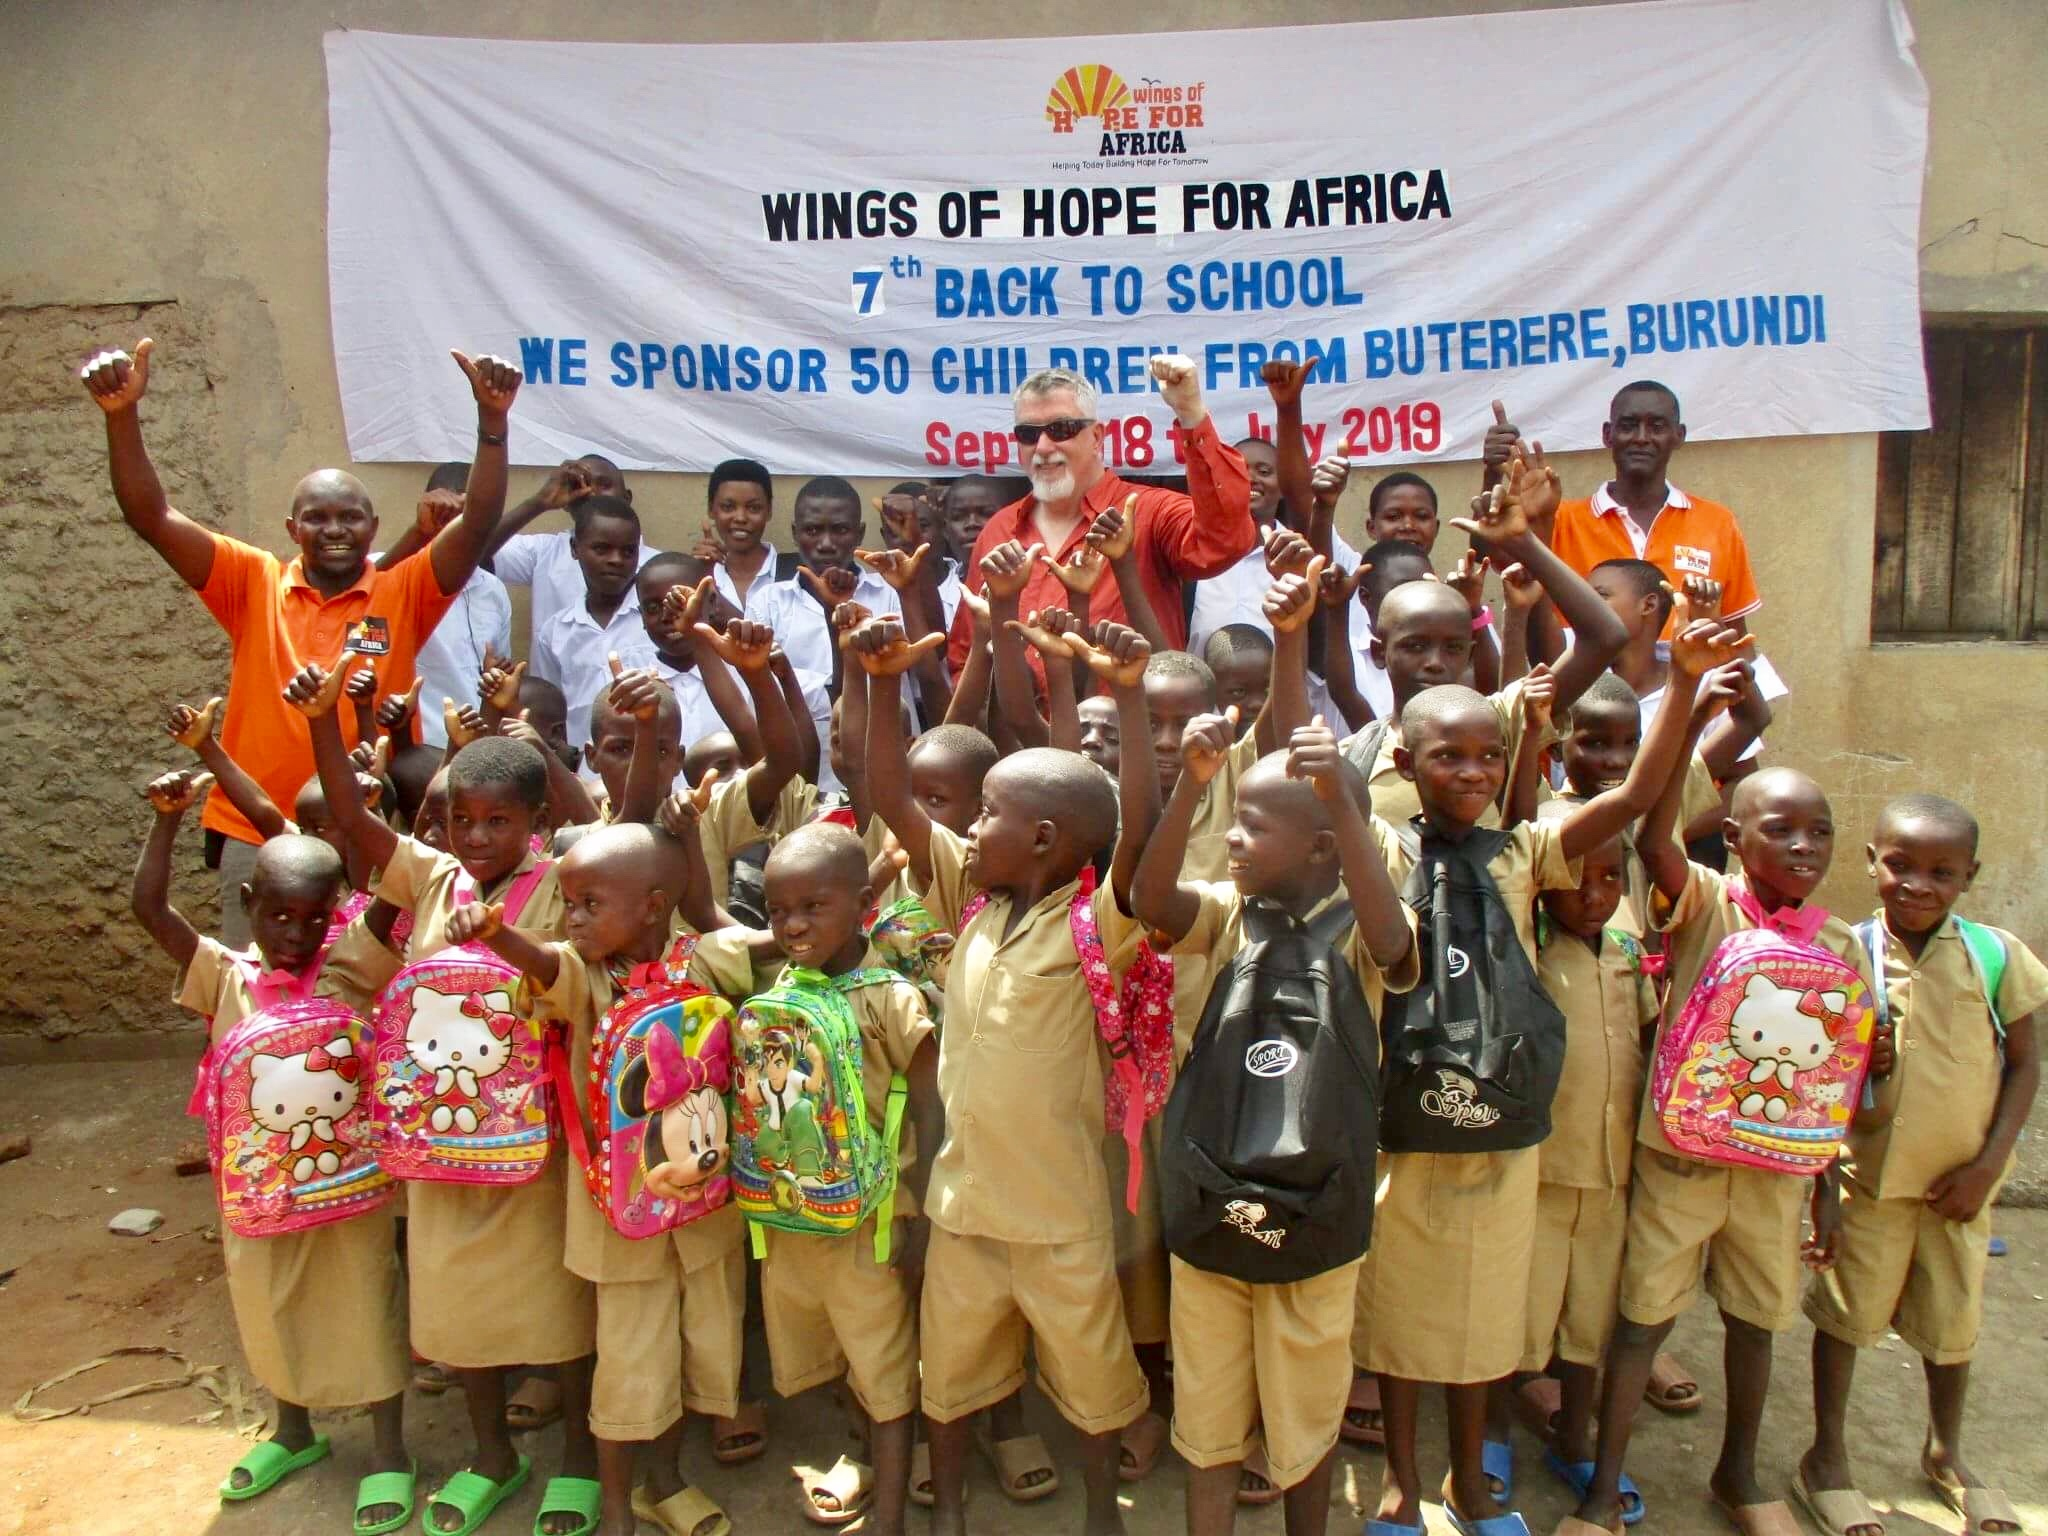 Our annual Back to School program helps children with access to education.  Your can help end the education crisis in  Africa - donate to our charity's Back to School program.